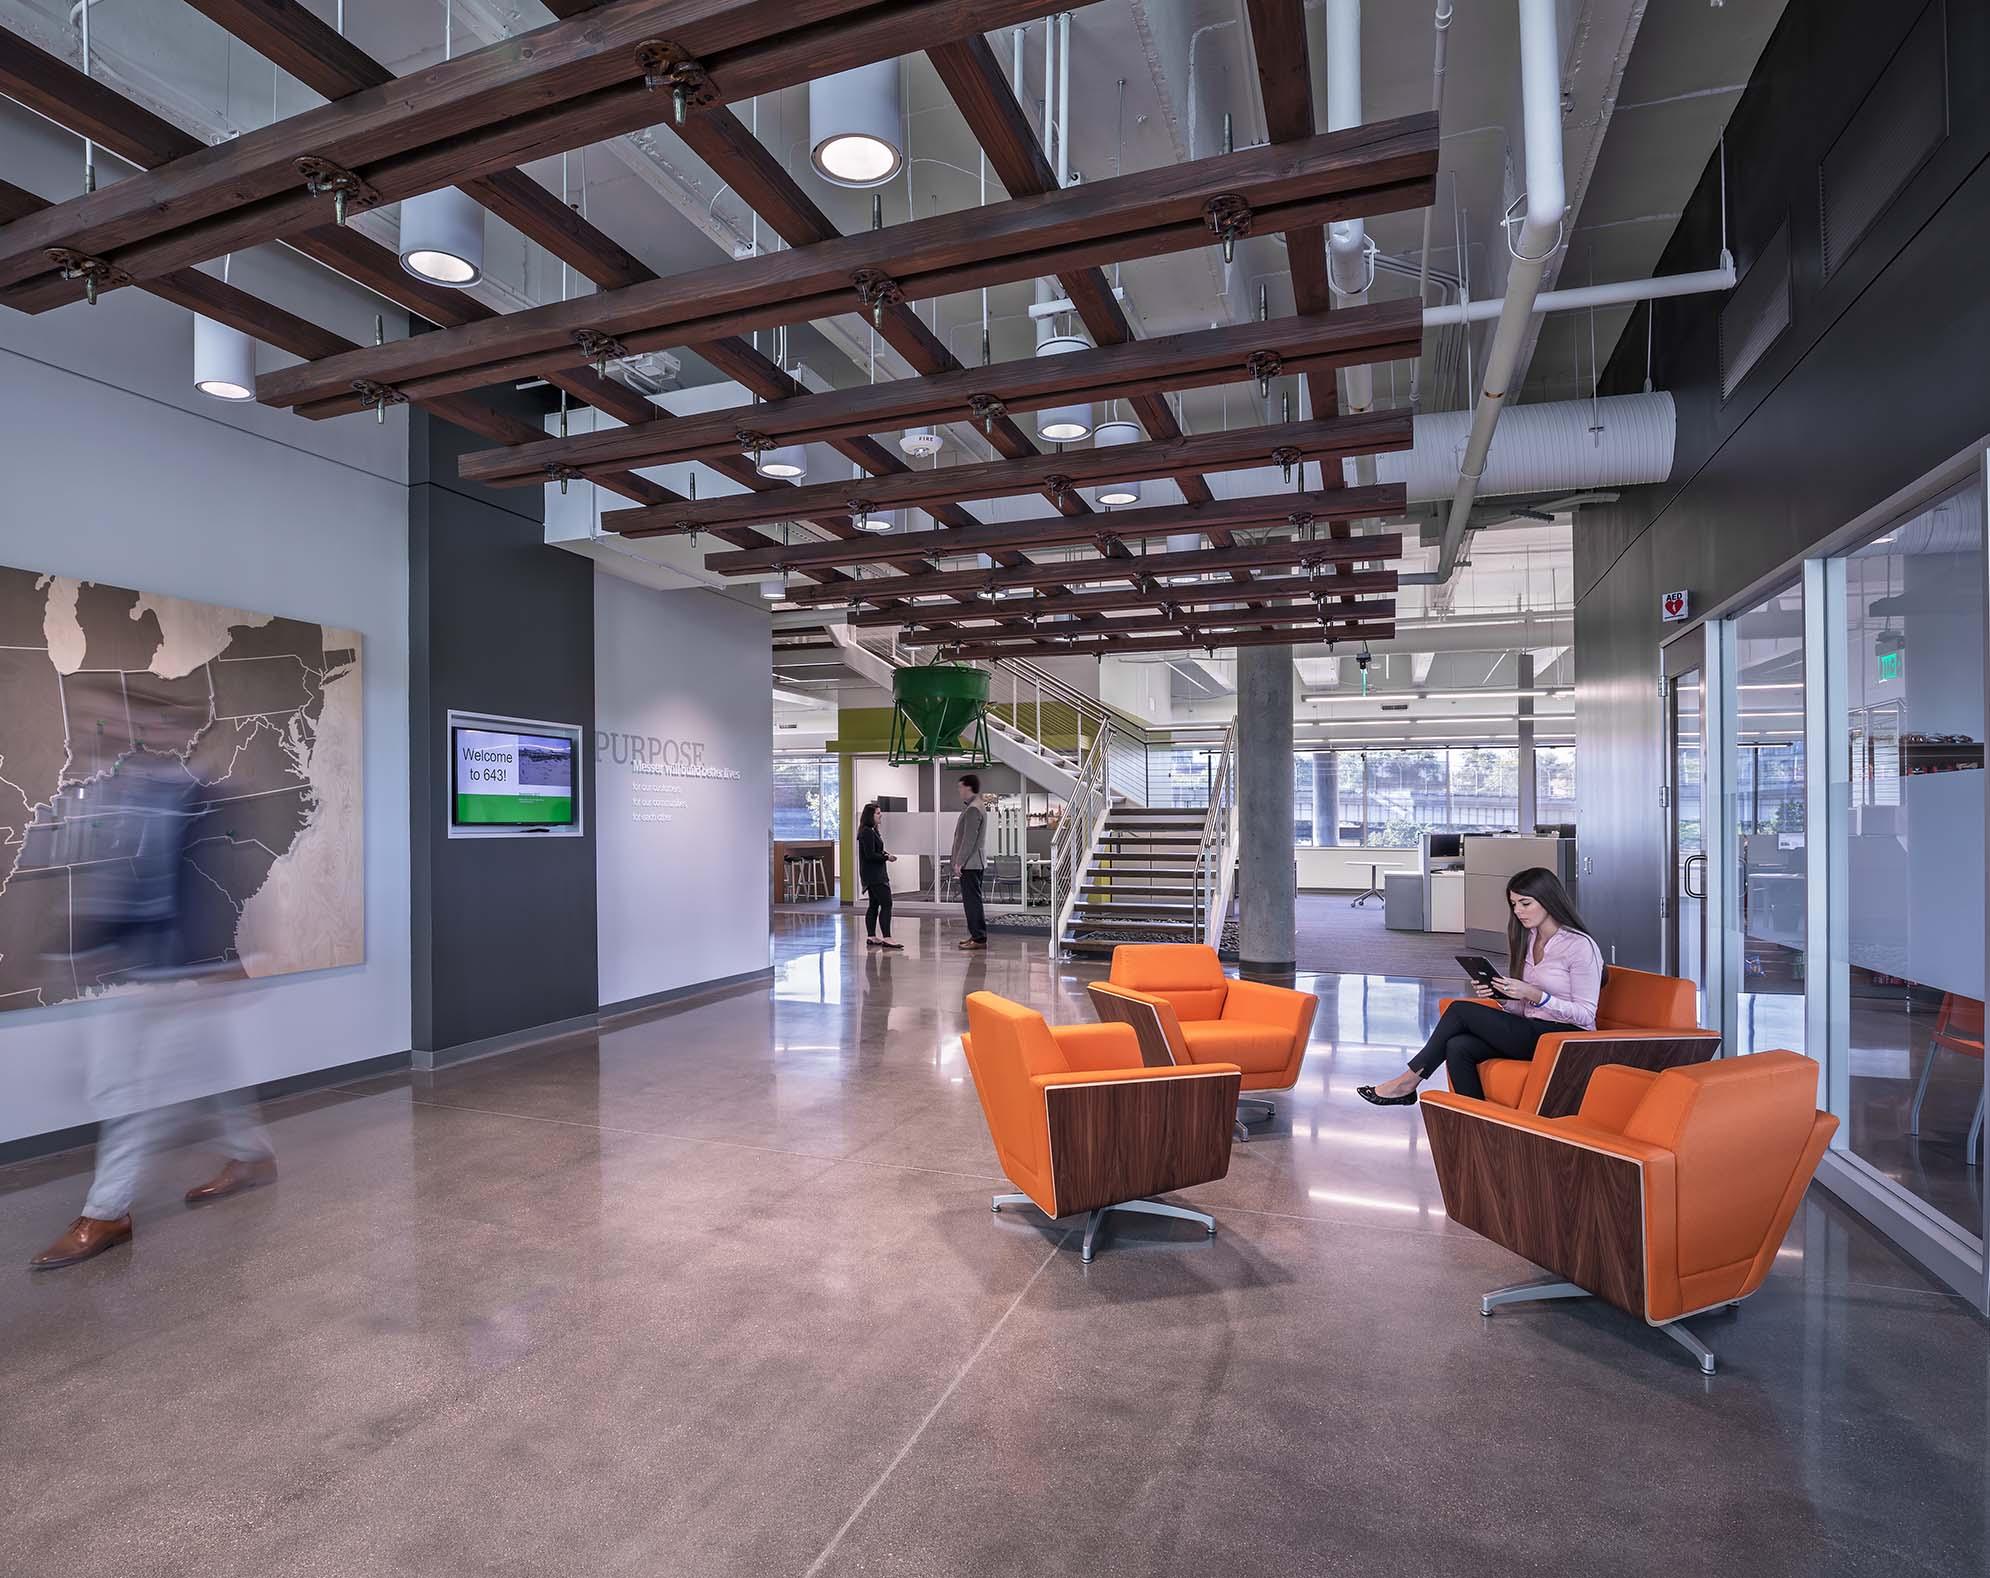 Comfortable seating is shown on Messer's first floor